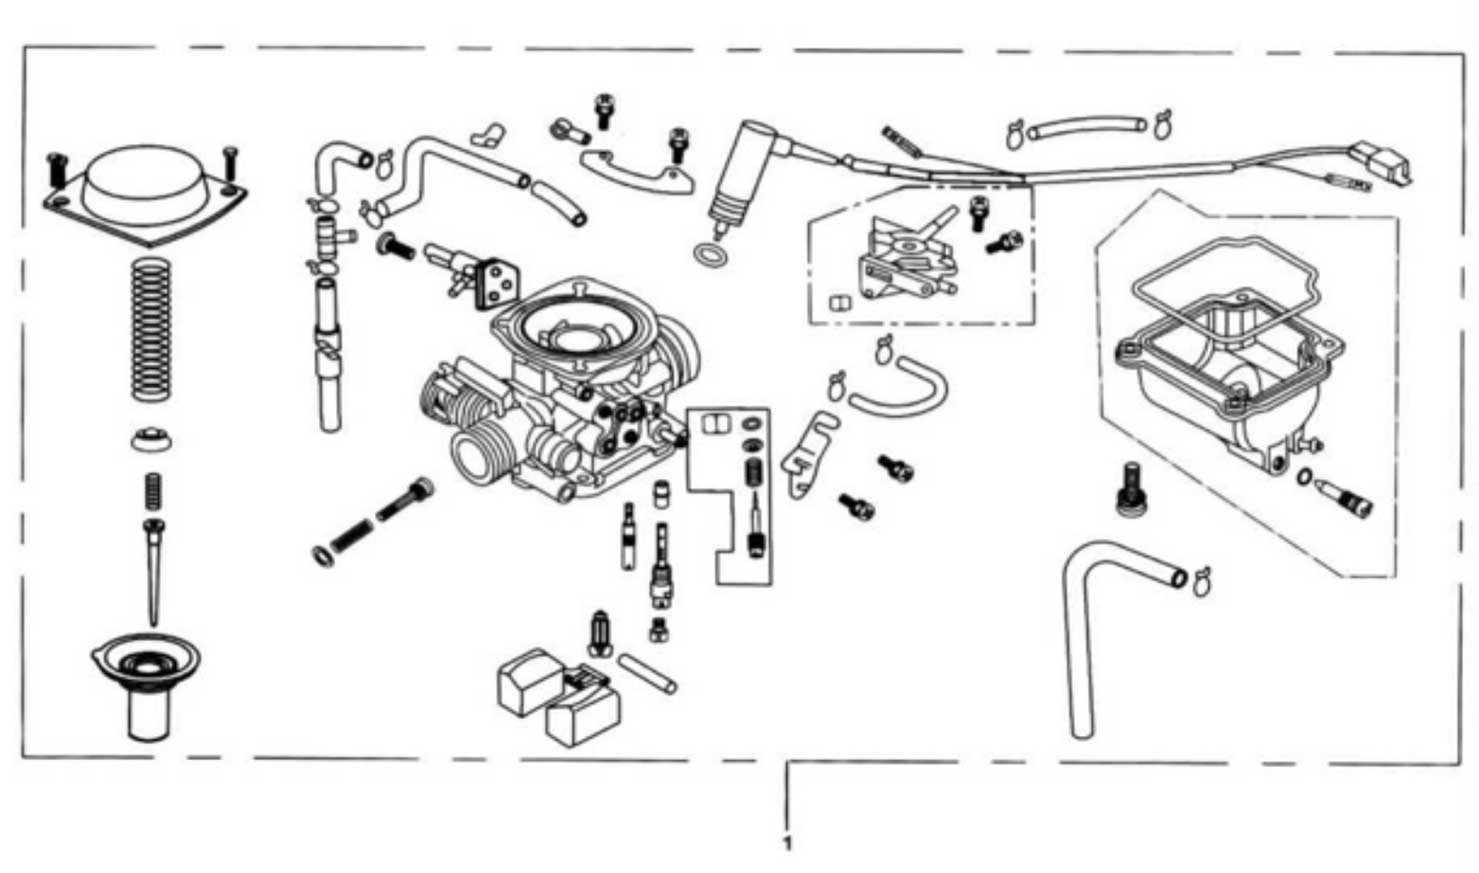 hight resolution of 250 cc carb diagram simple wiring post 1990 evinrude 115 wiring diagram 250 cc carb diagram